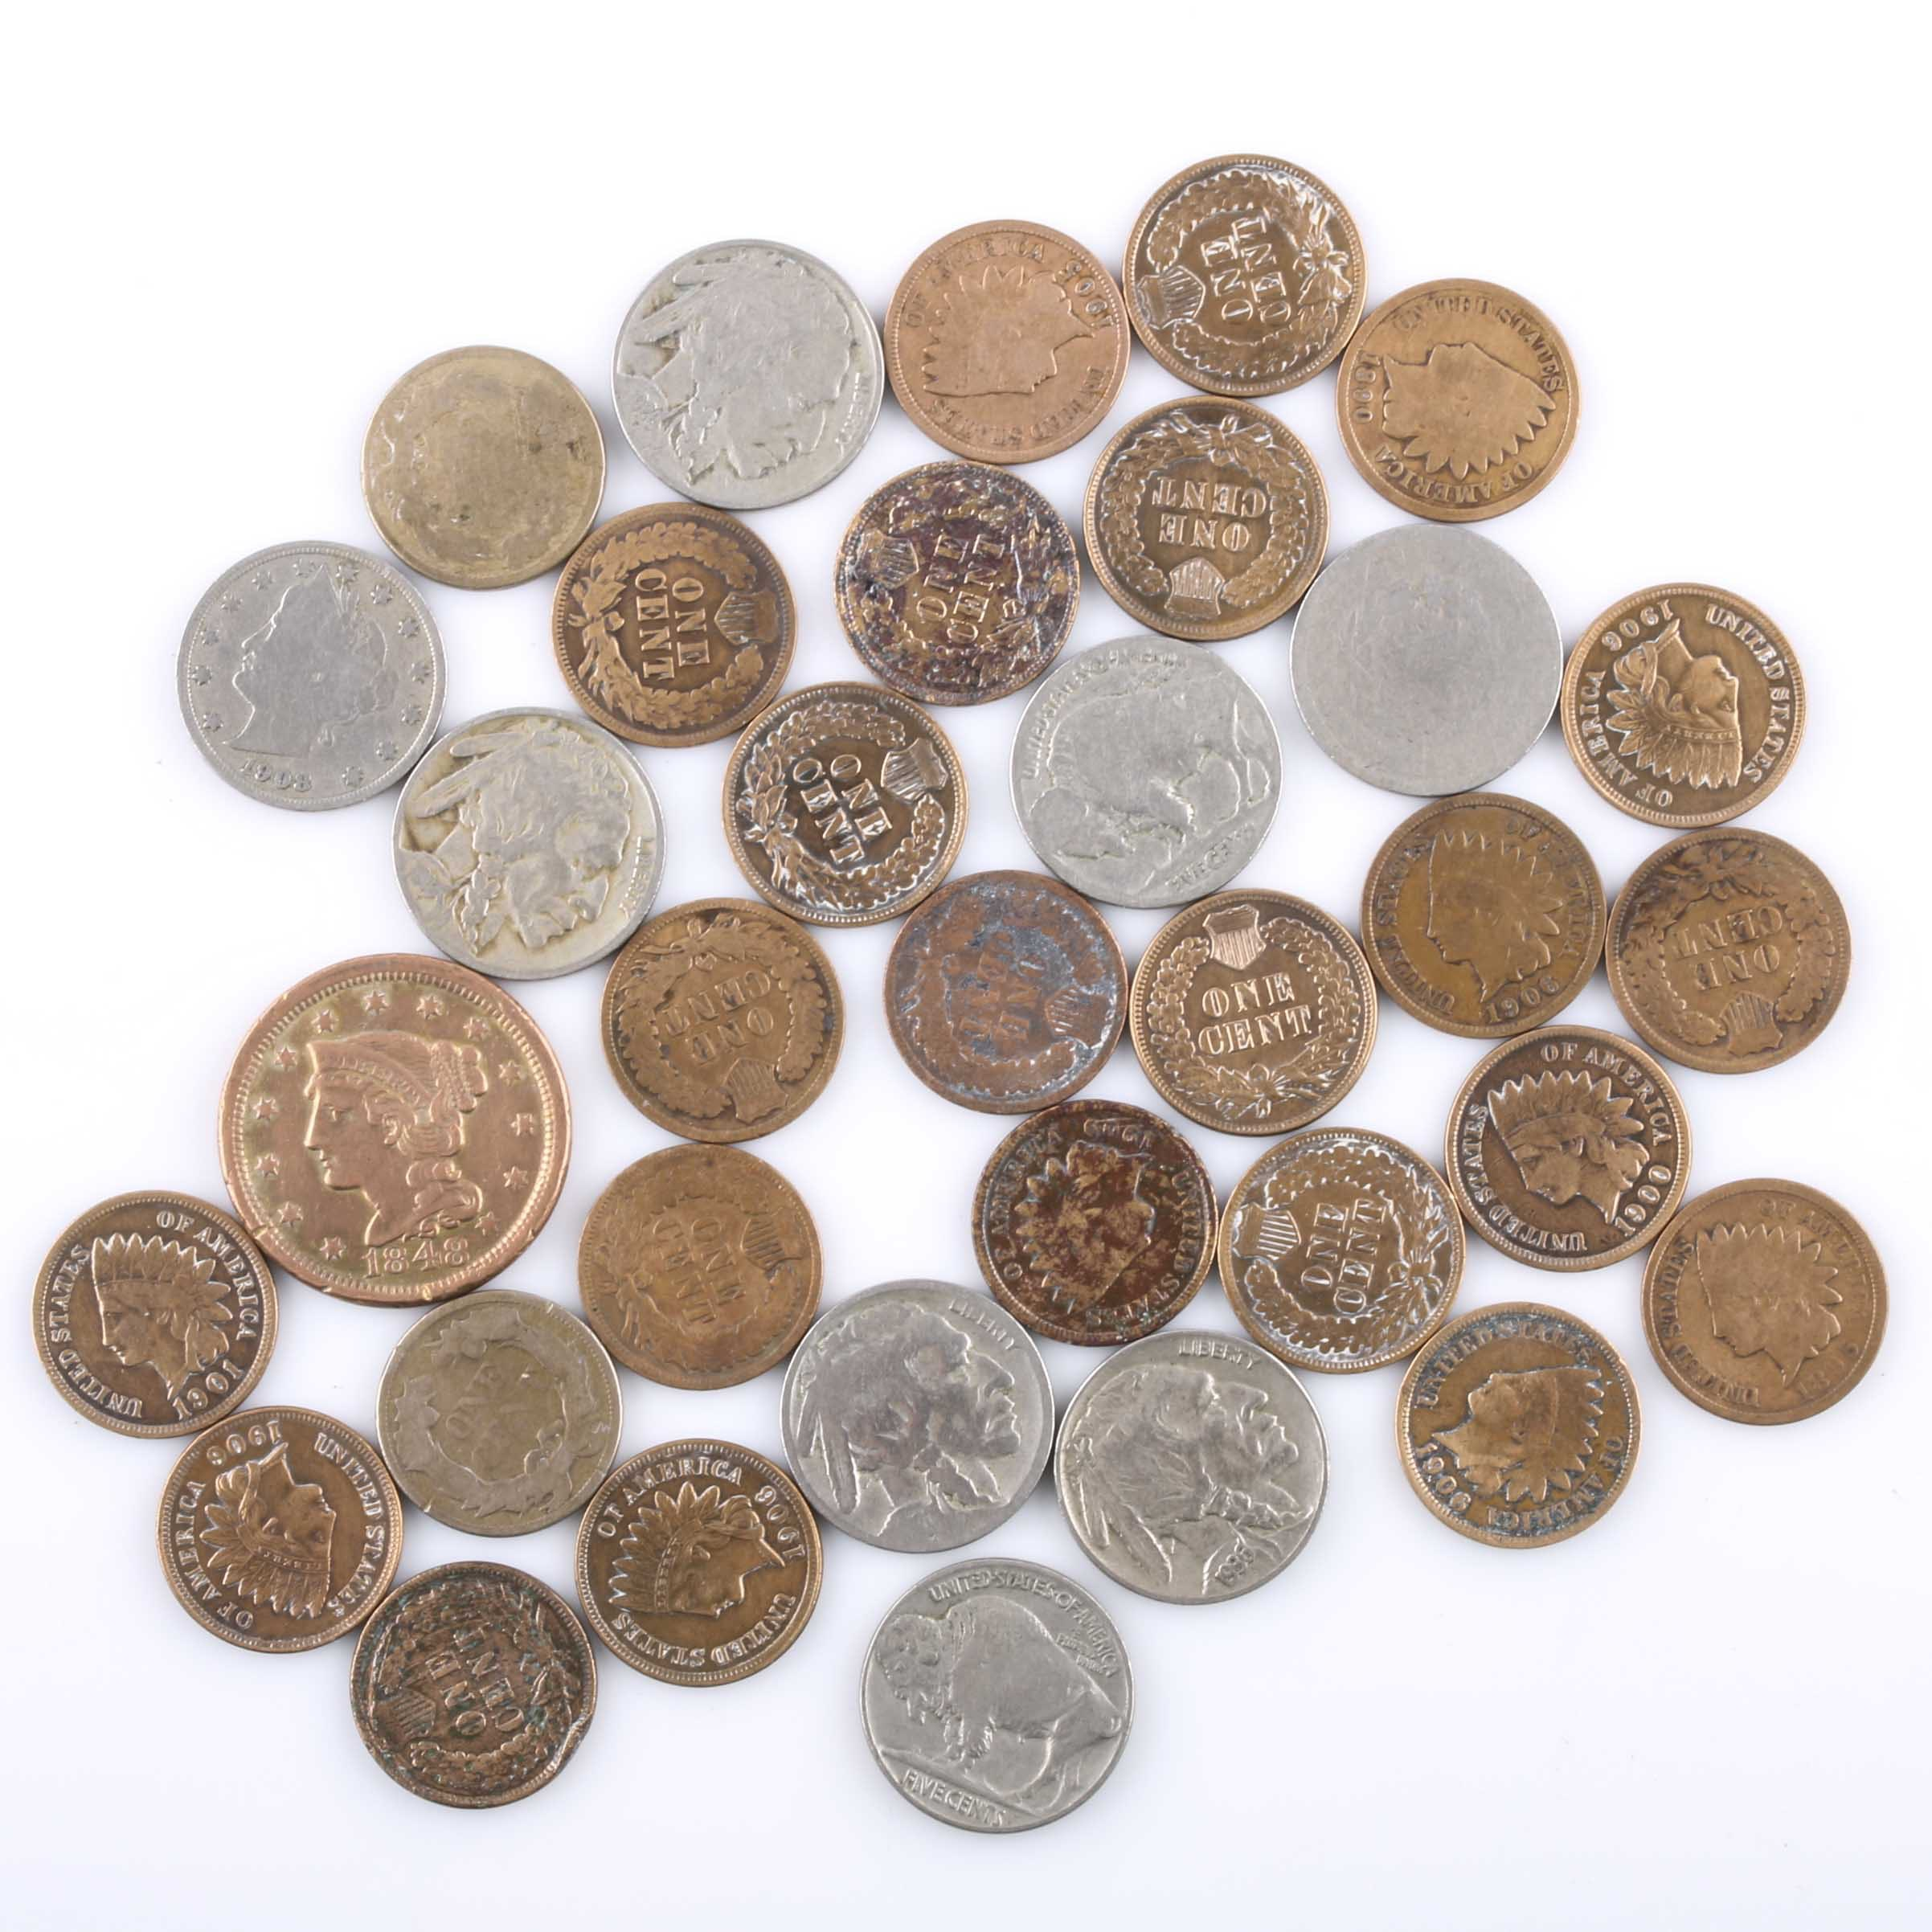 United States One Cent Coins and Nickels